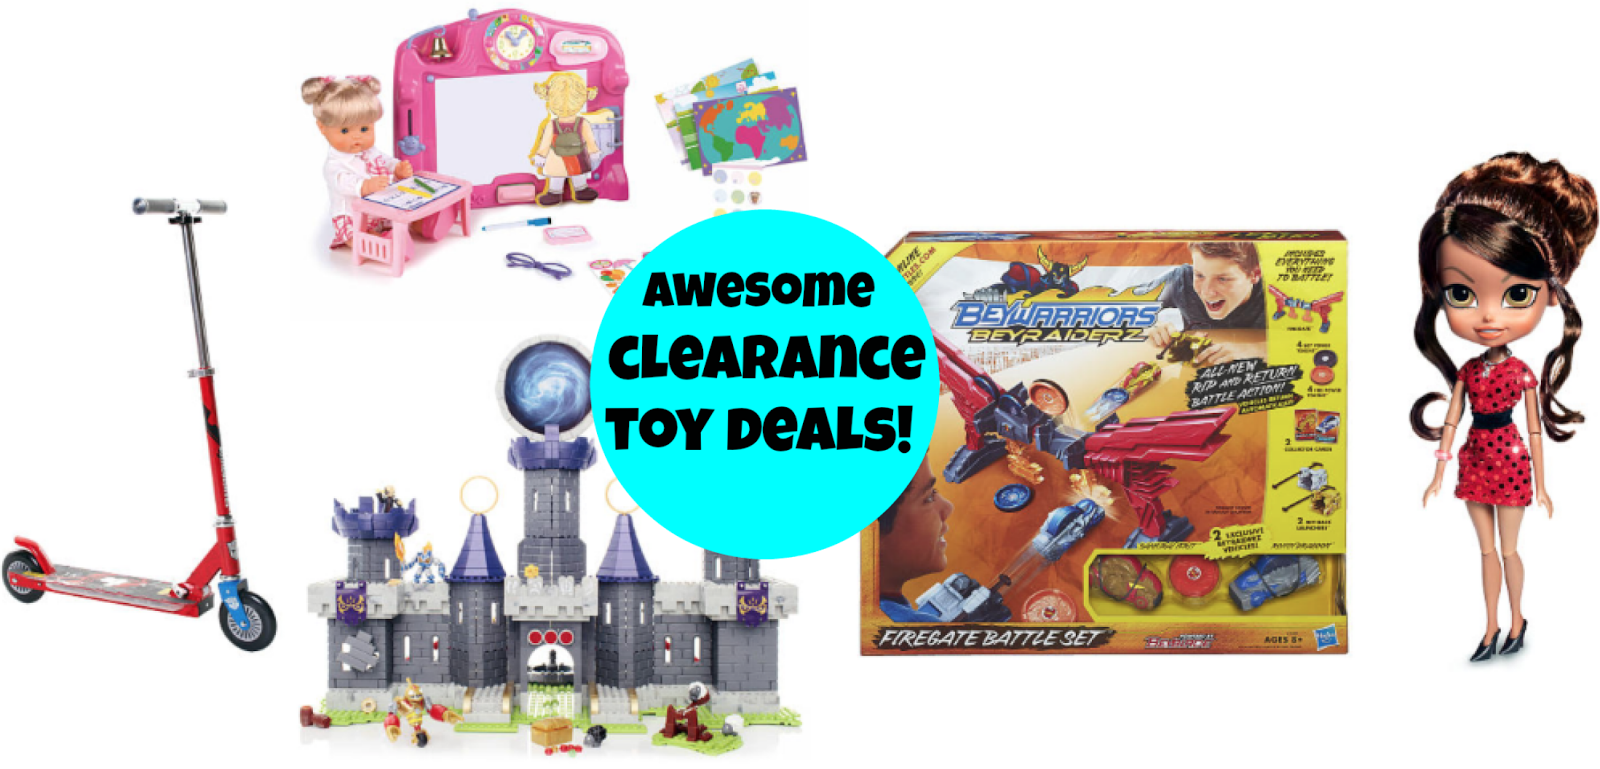 http://www.thebinderladies.com/2015/01/toysrus-awesome-clearance-toy-deals.html#.VLVOm4fduyM